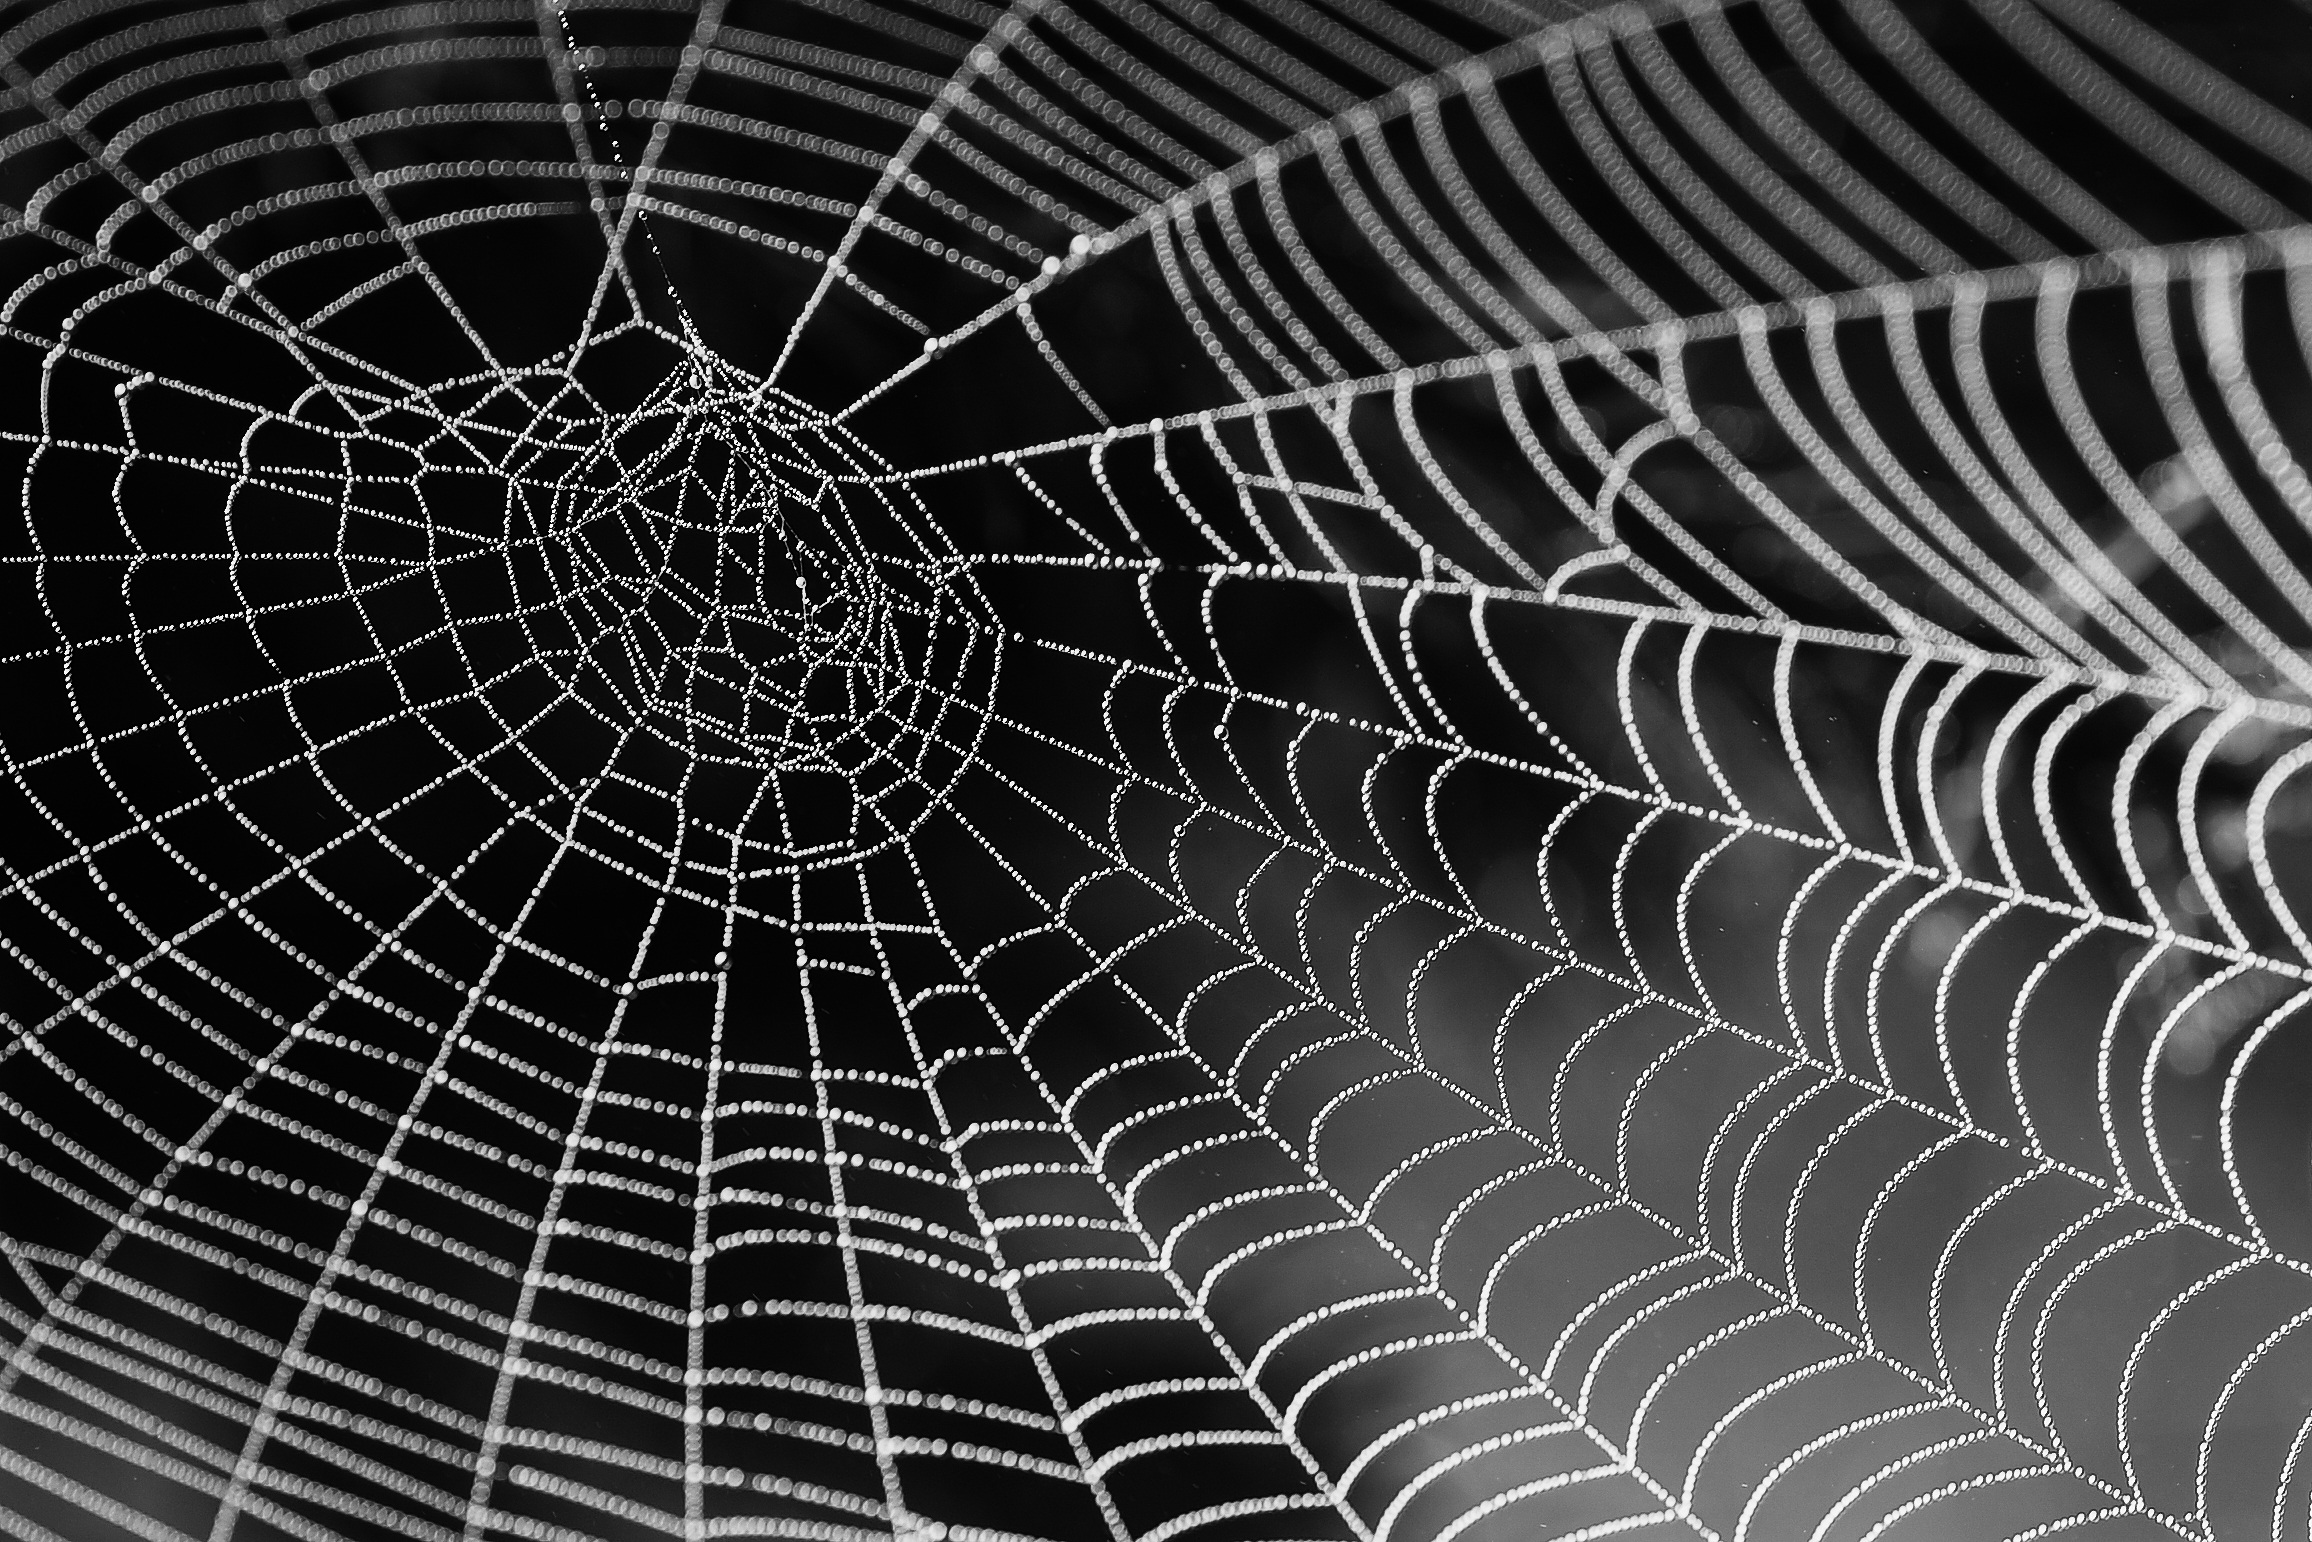 spider-web-with-water-beads-network-dewdrop.jpg